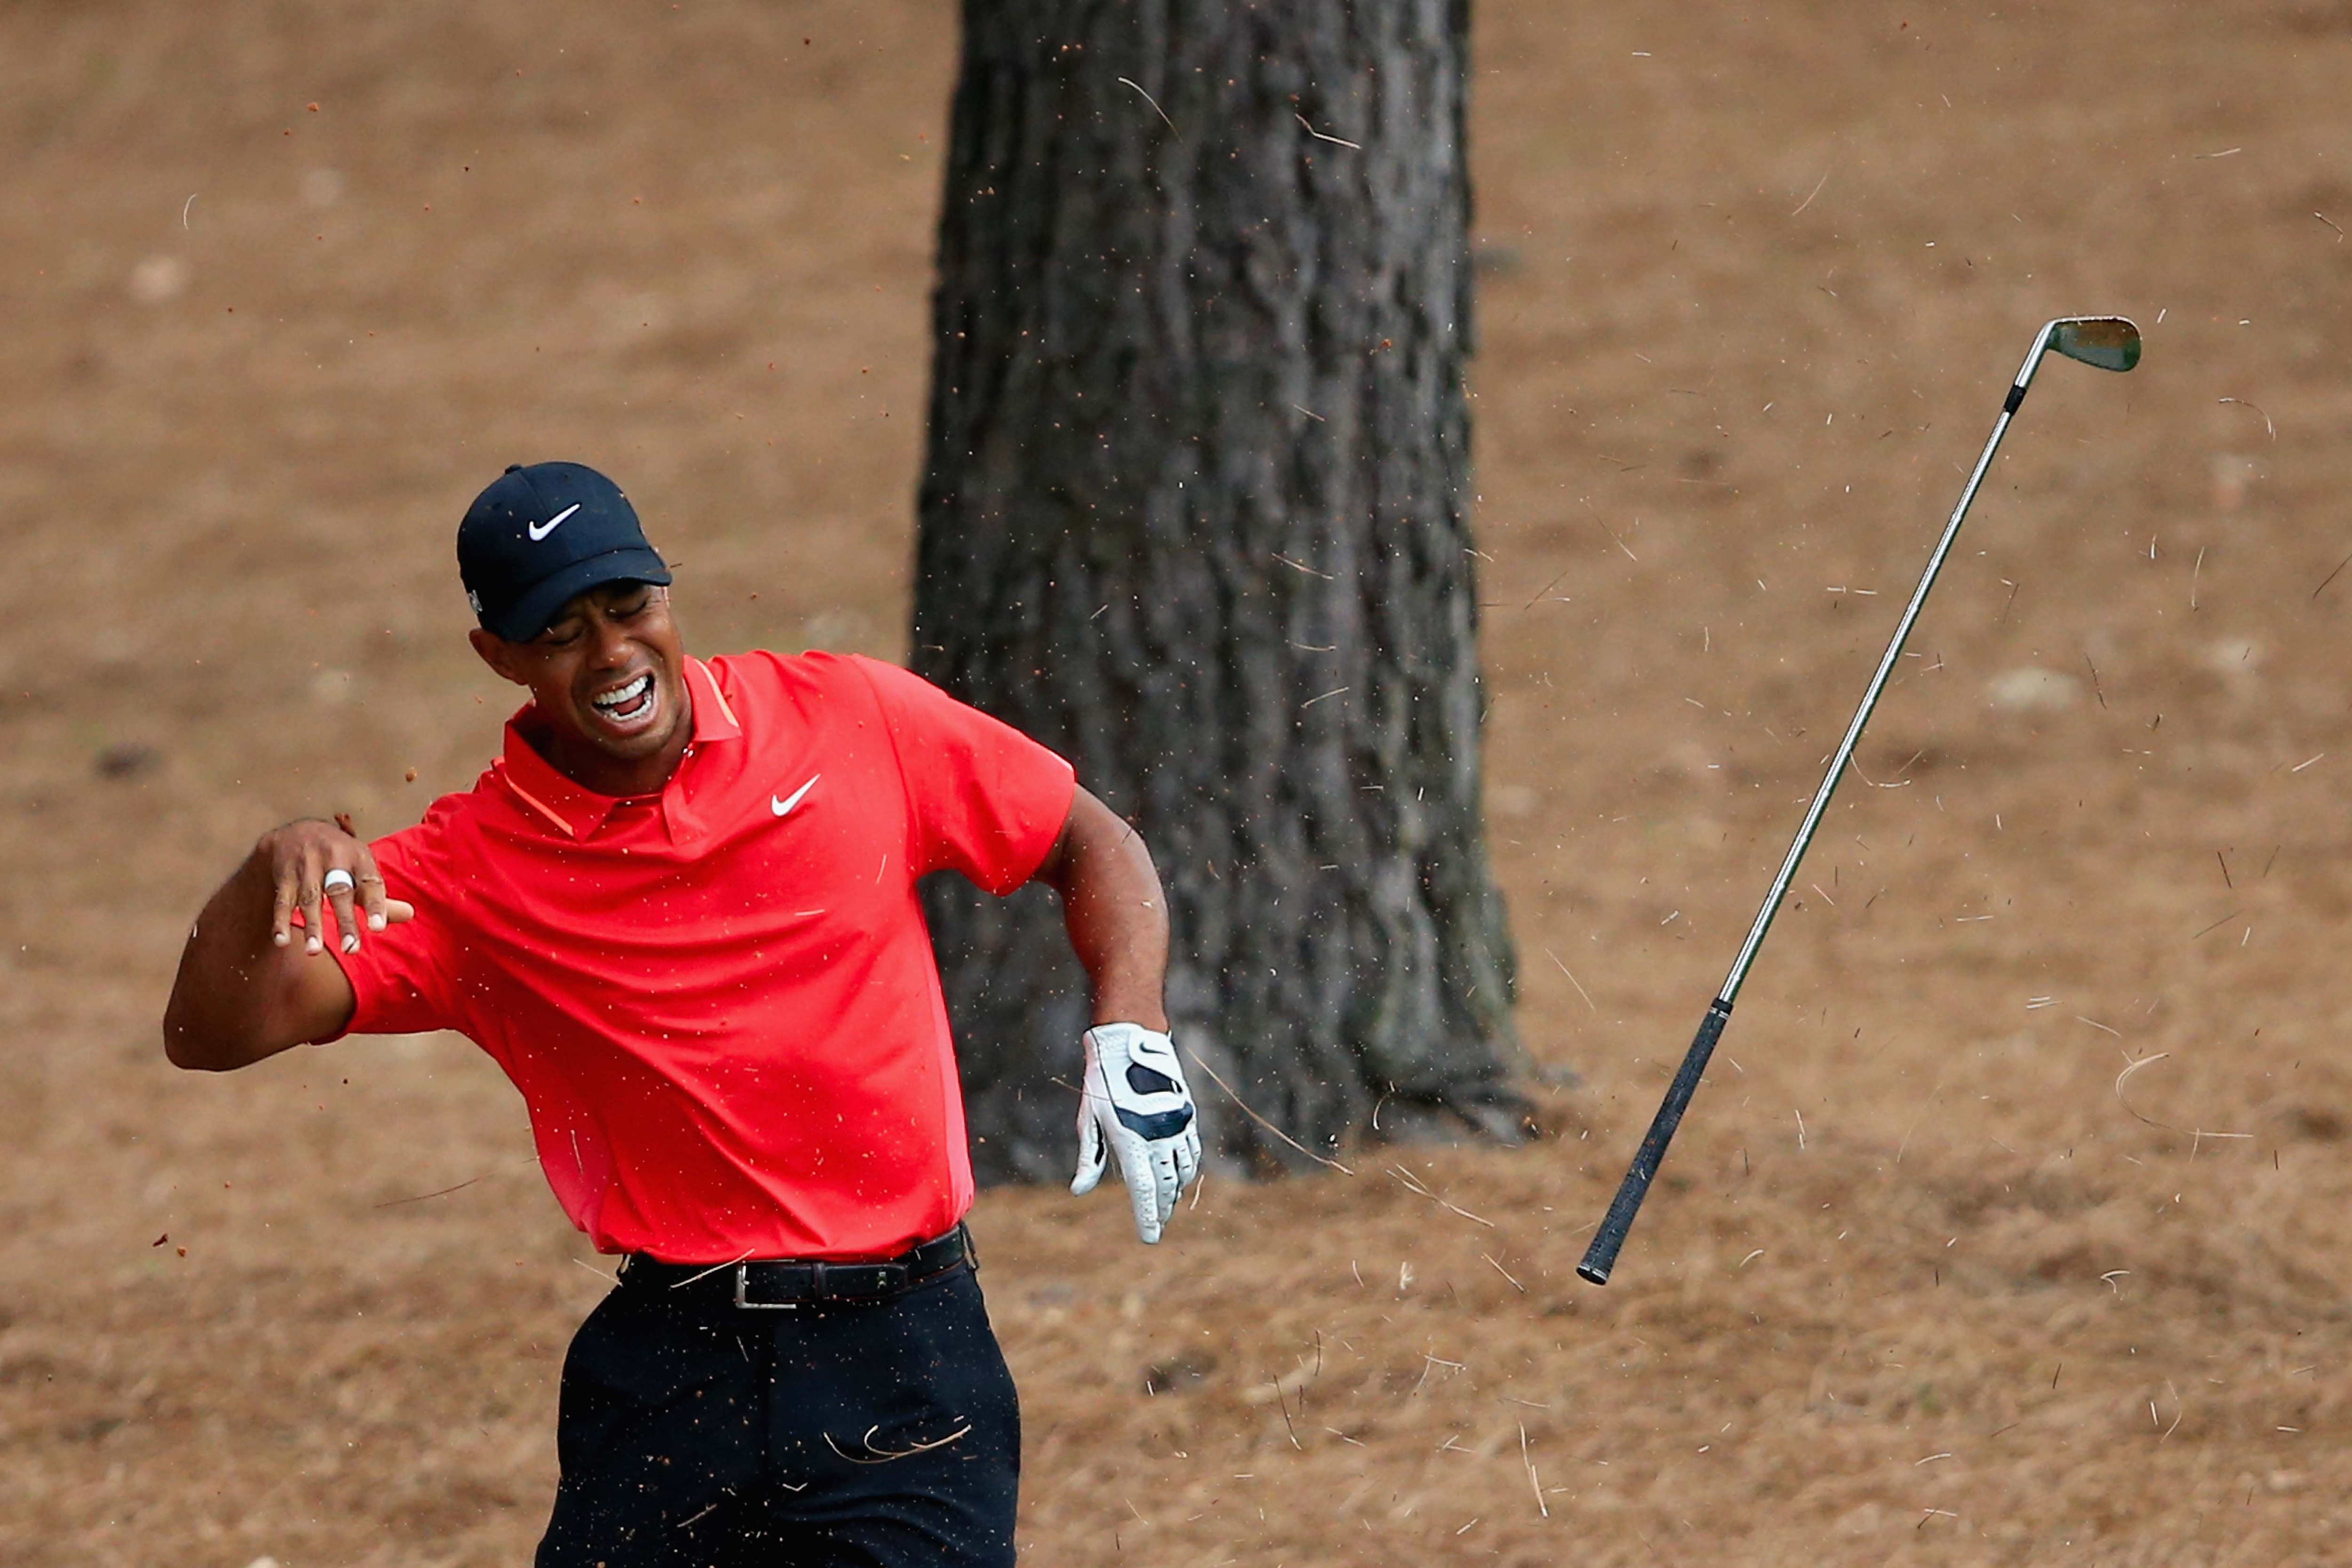 Dr. Tiger at the Masters